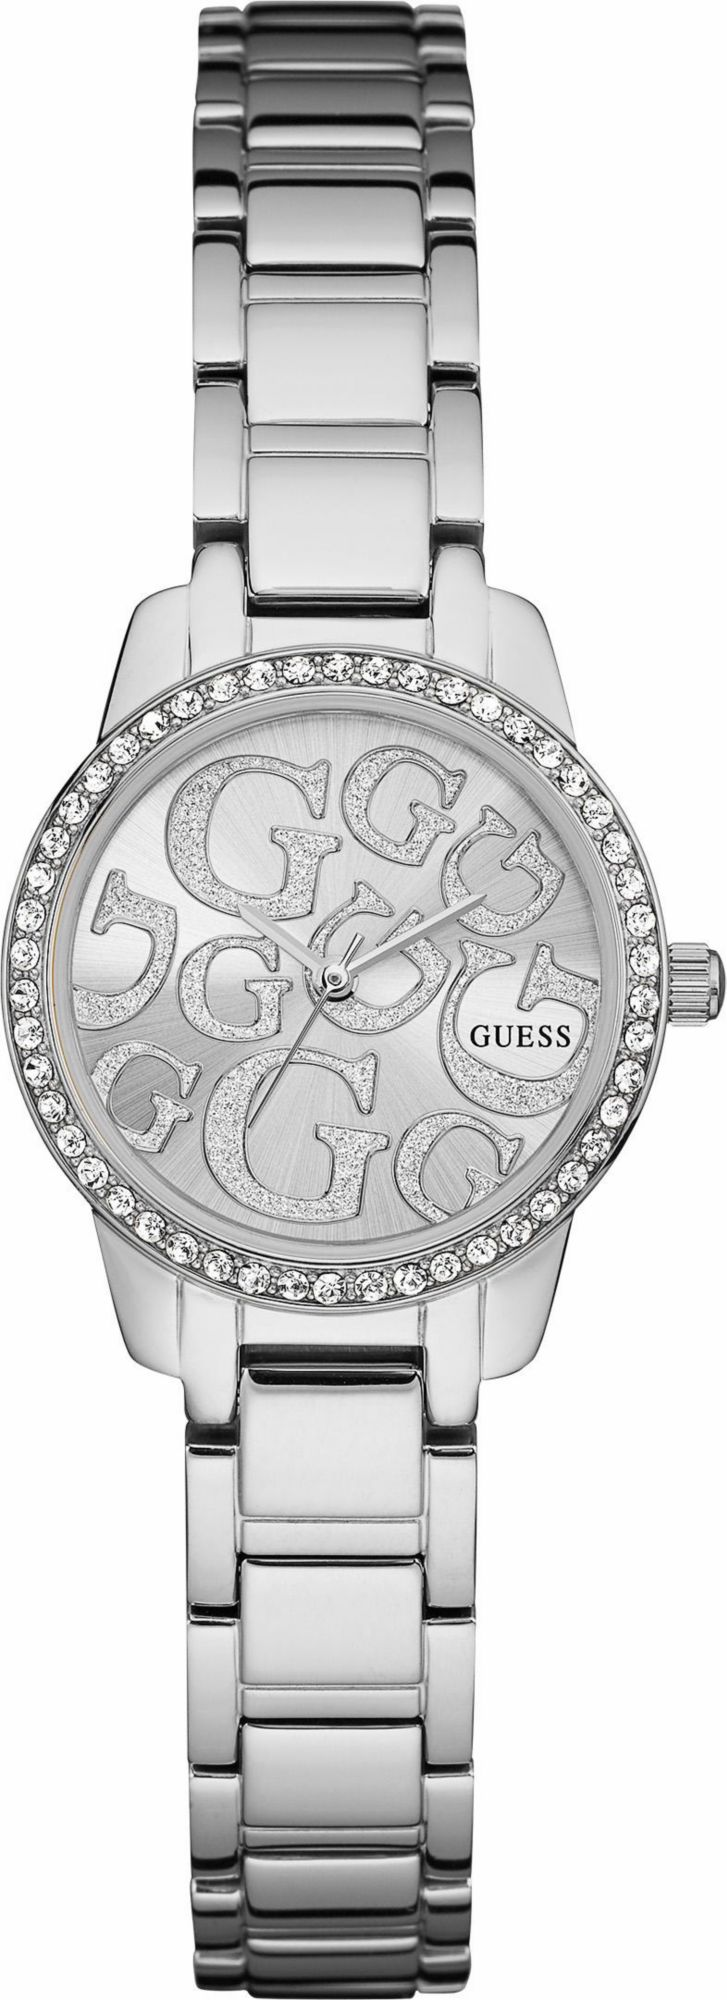 GUESS Damenuhr Ladies Jewelry Guess silber